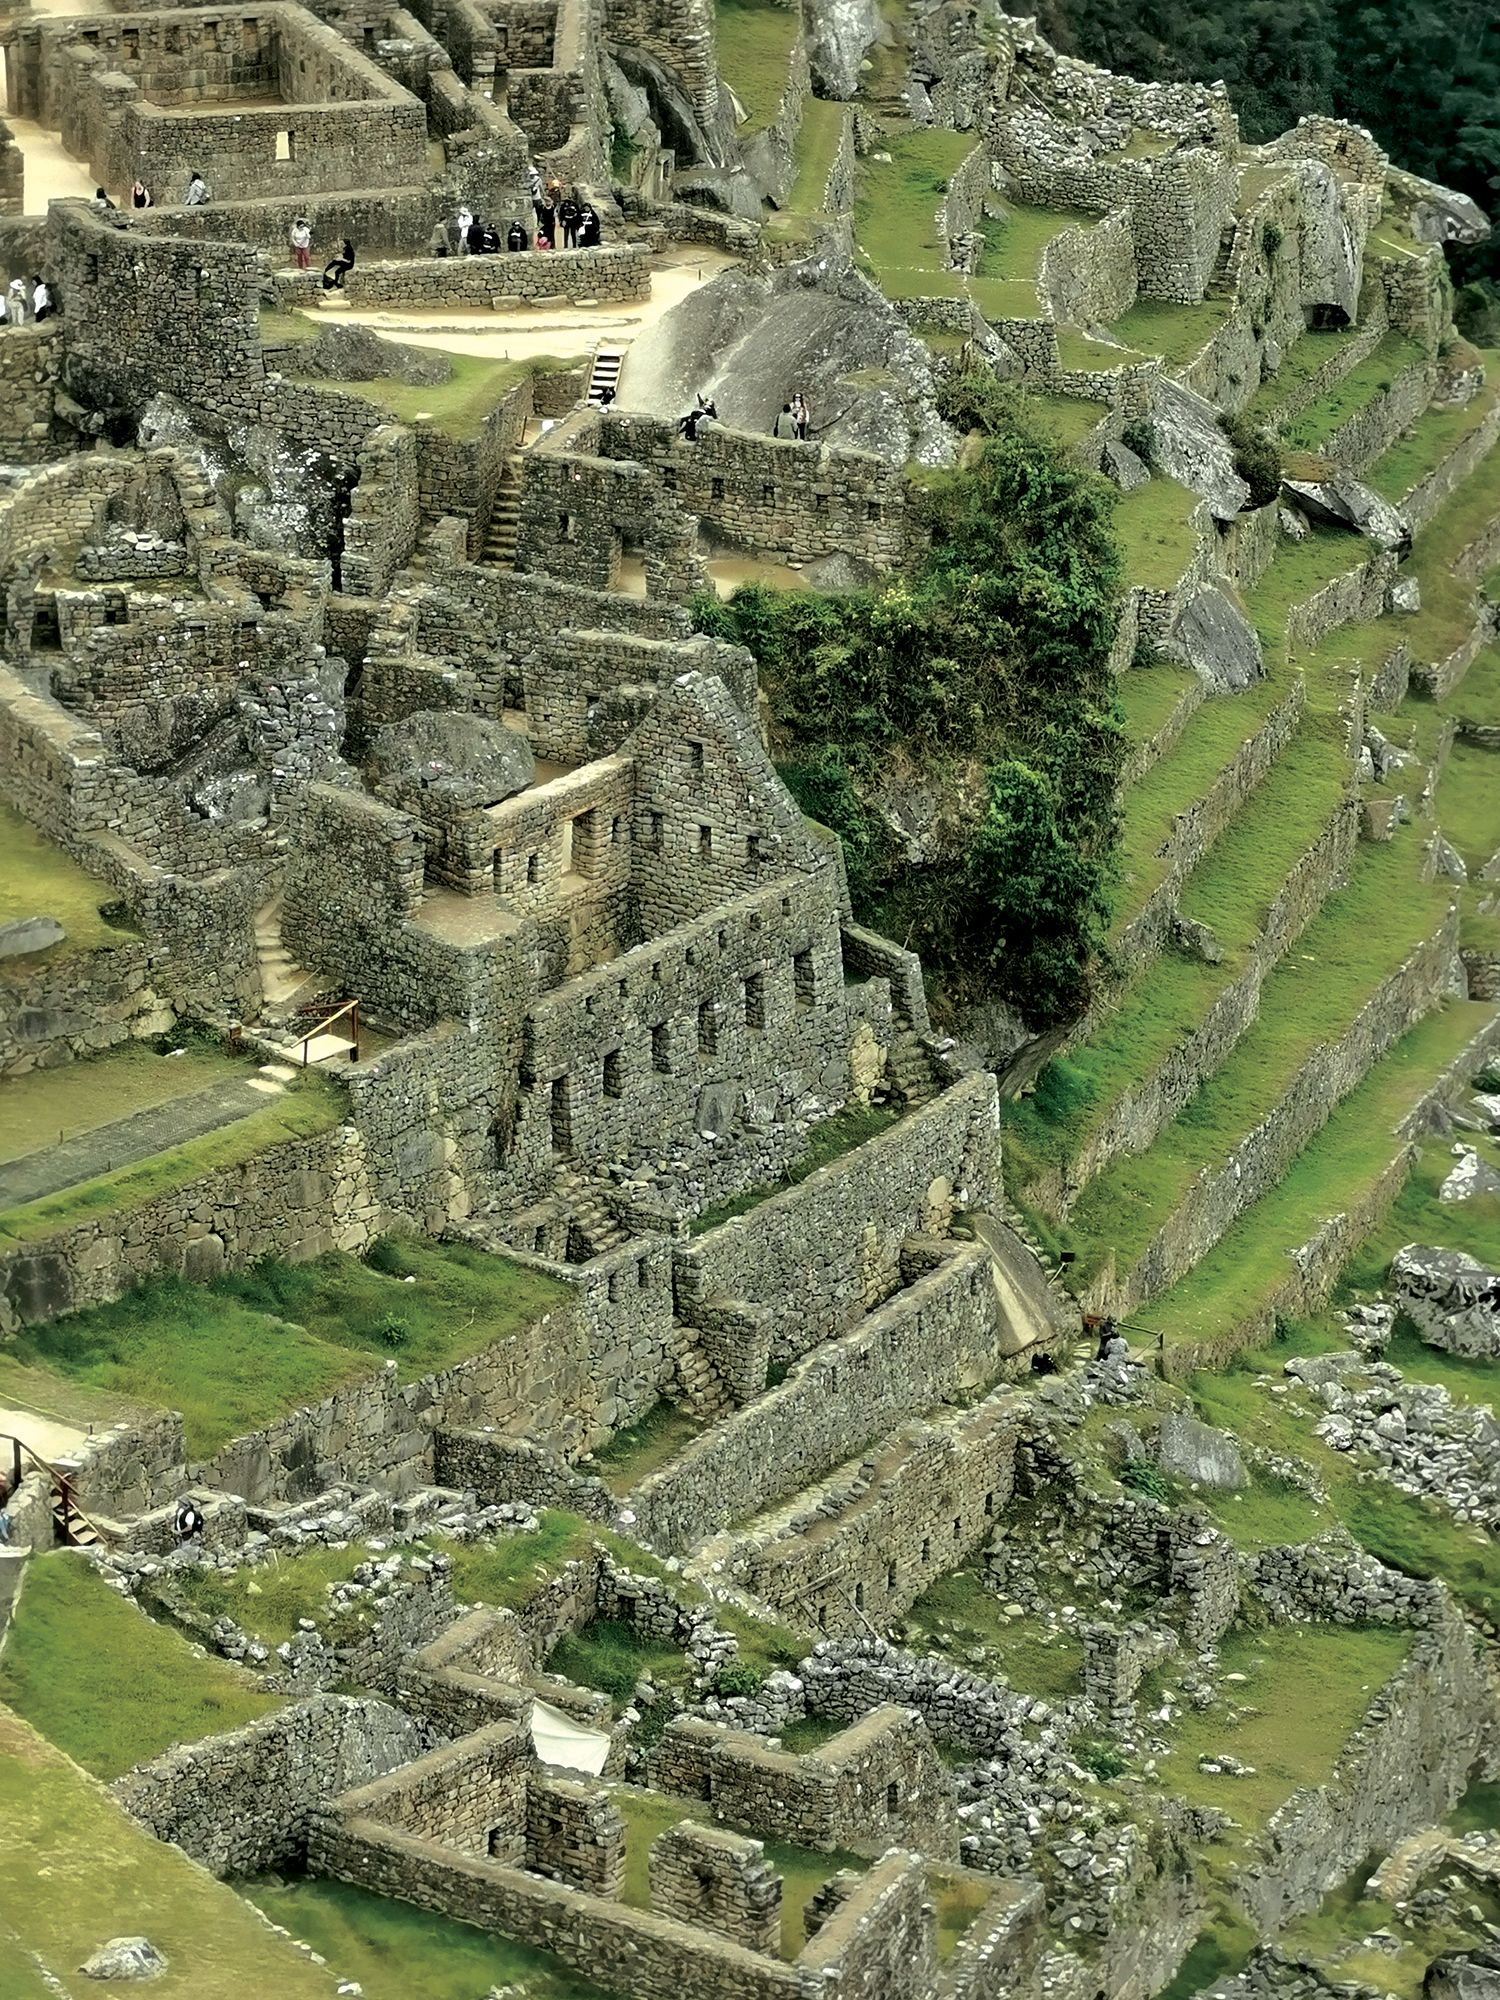 An Unforgettable Journey to Historical Machu Picchu, The Once Lost Incan City